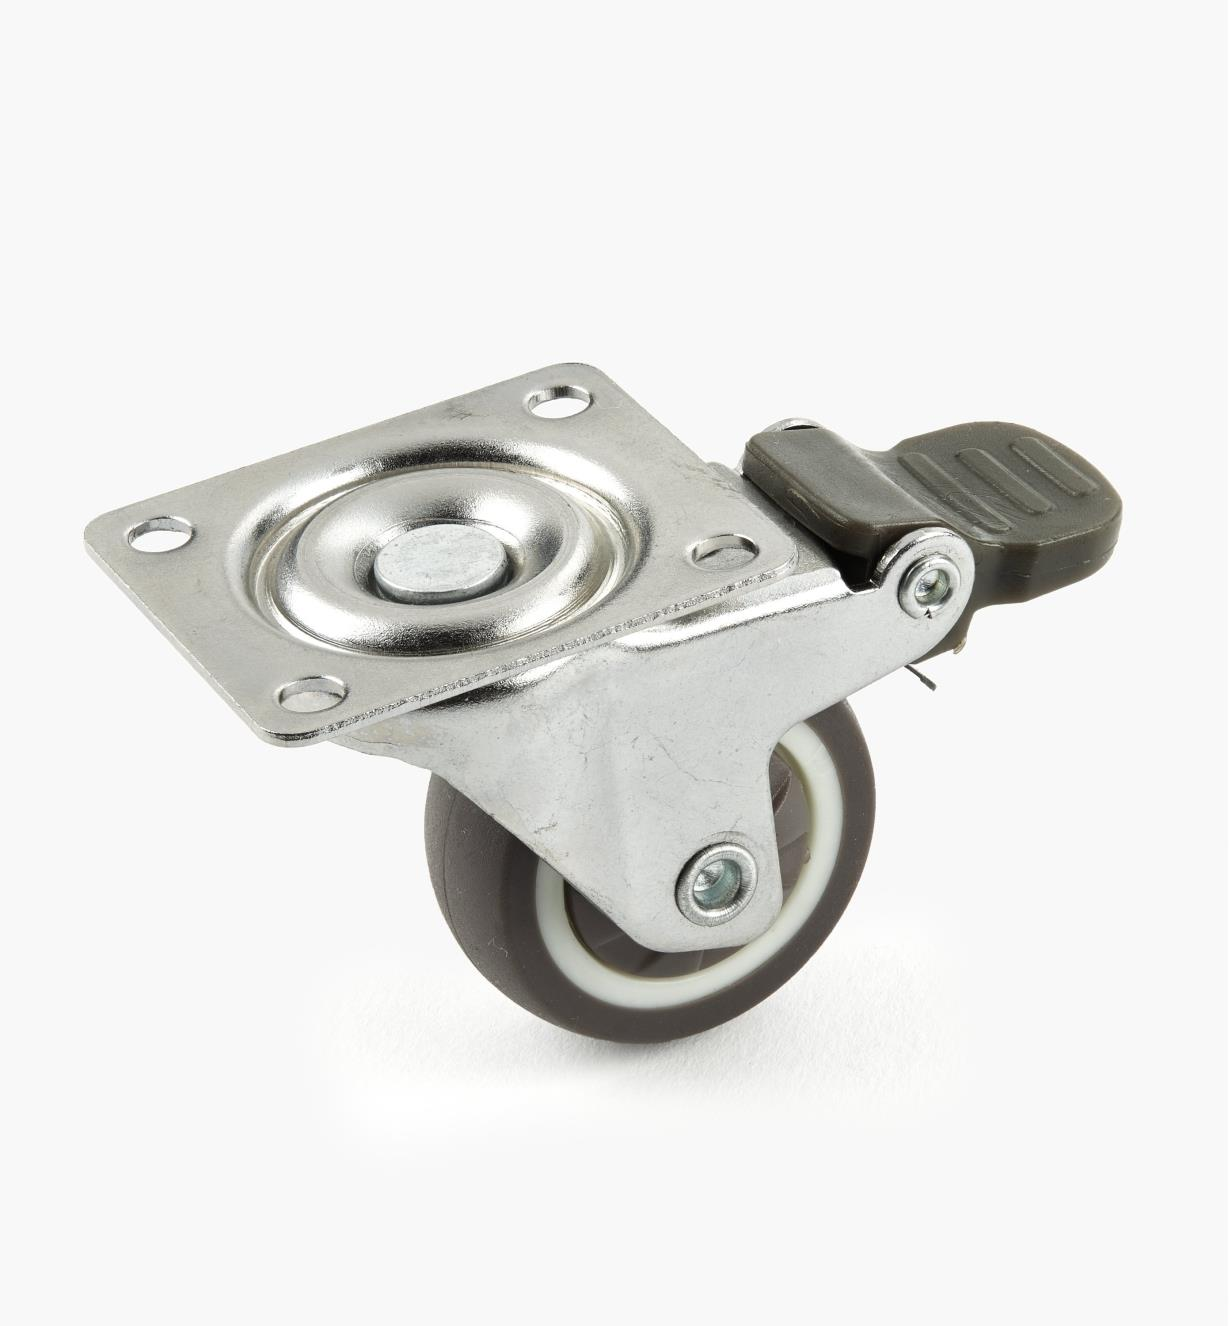 00K2165 - 32mm TPR Swivel Caster, ea.